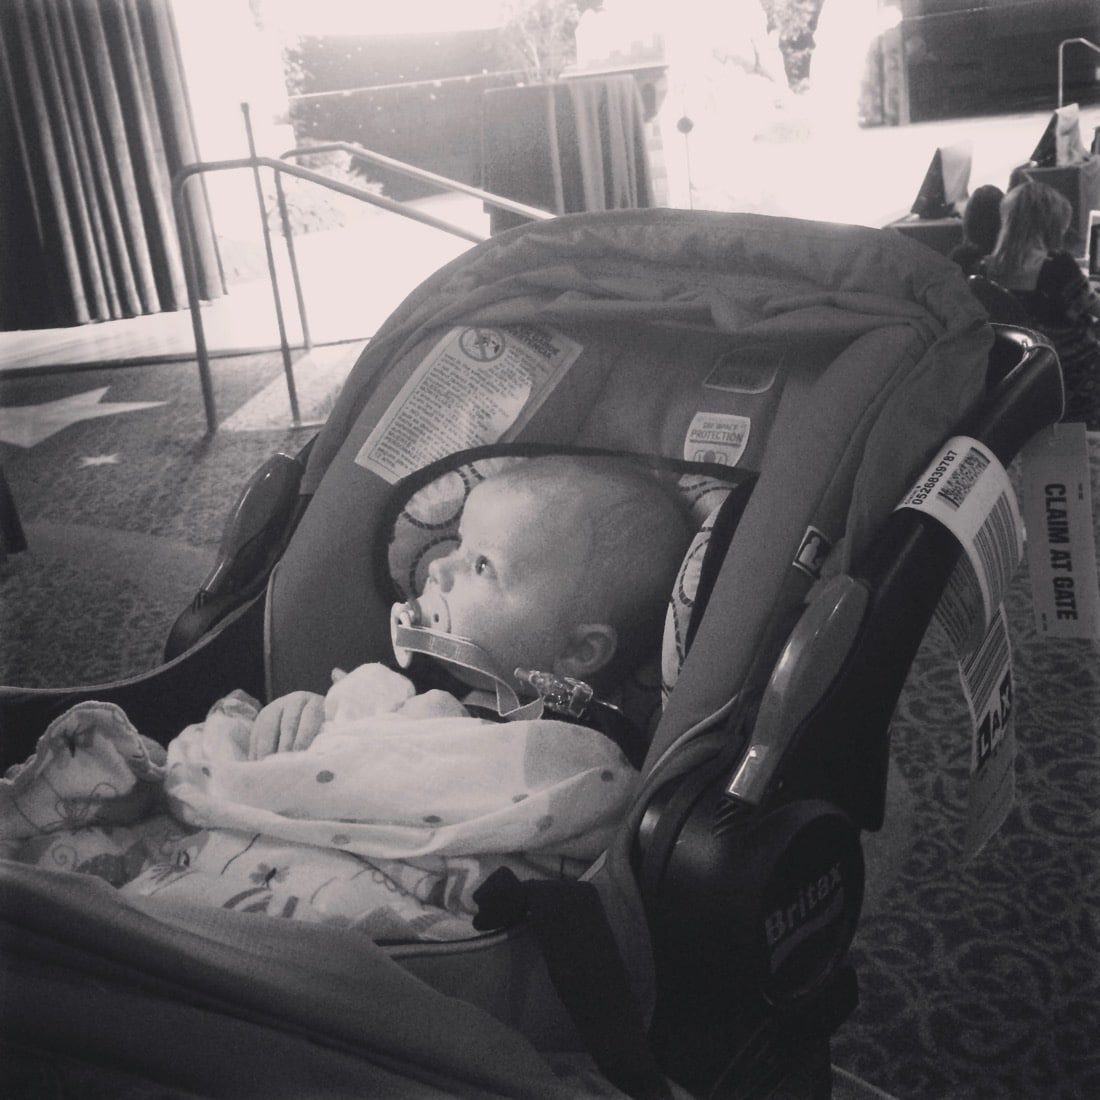 Bringing a baby to a conference